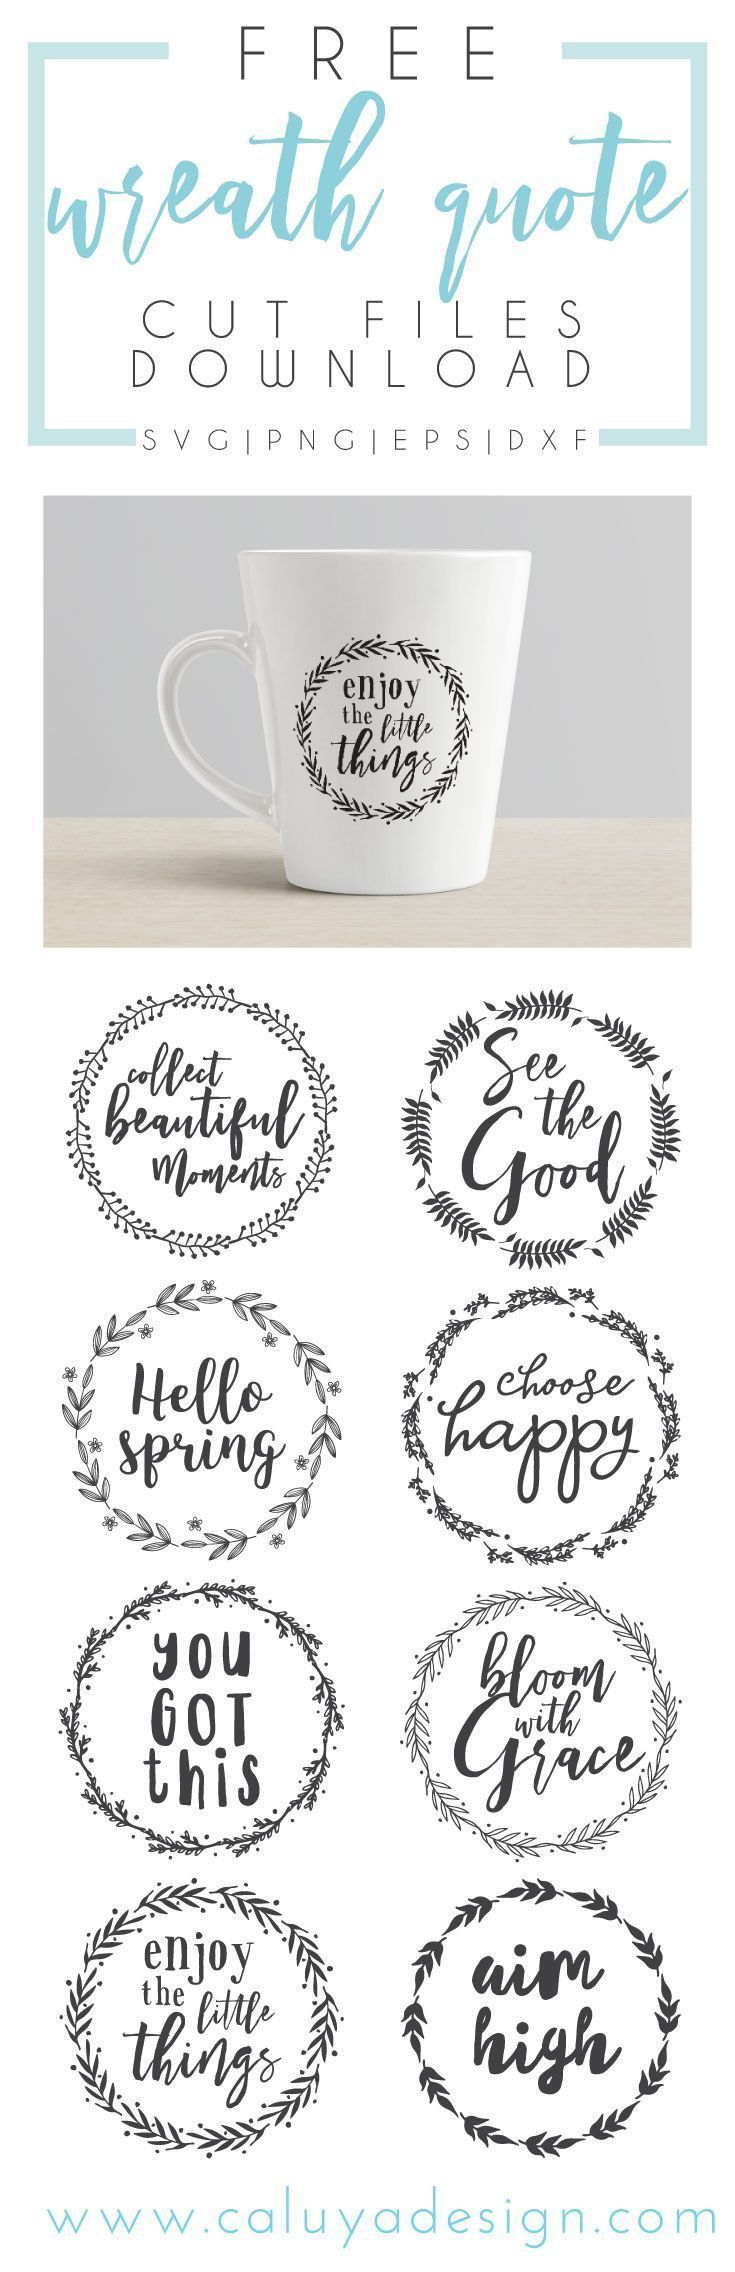 Free wreath quote SVG cut file download, compatible with Cricut and Cameo Silhouette, and other major cutting machines. Enjoy this beautiful wreath inspirational and happy quotes SVG cut files for free! 100% free for personal use, and only $3 for commerci